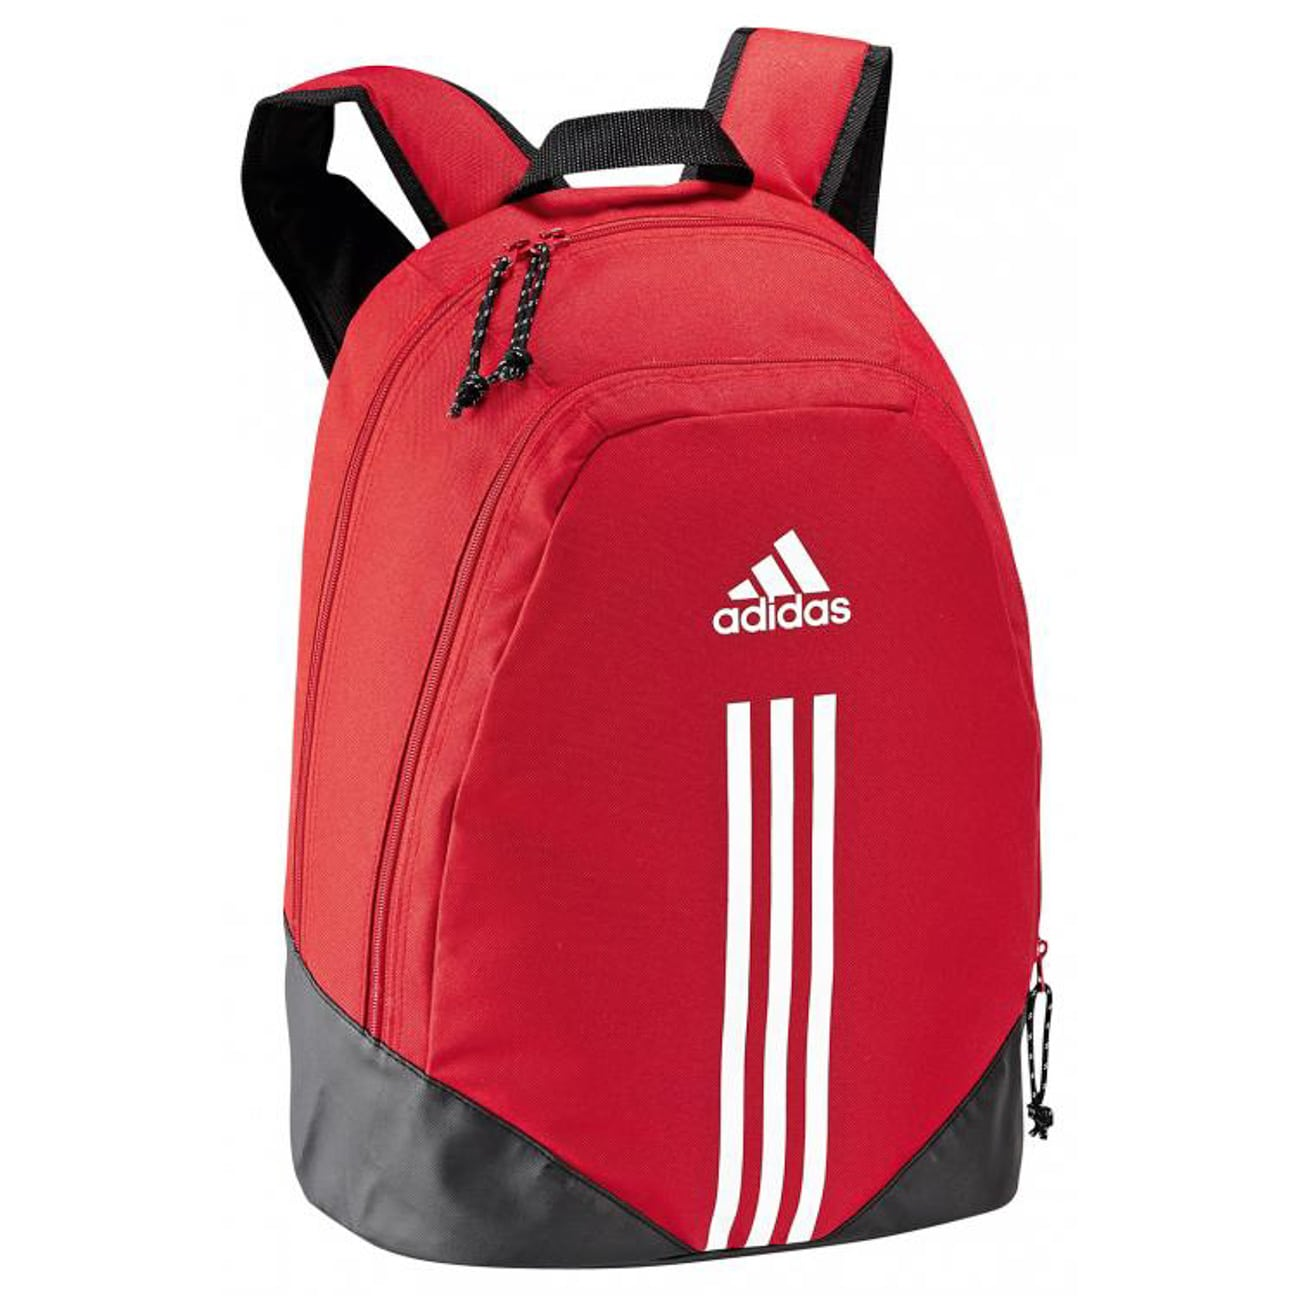 c118724427 ... Sac à Dos 3S by adidas - rouge 1 ...